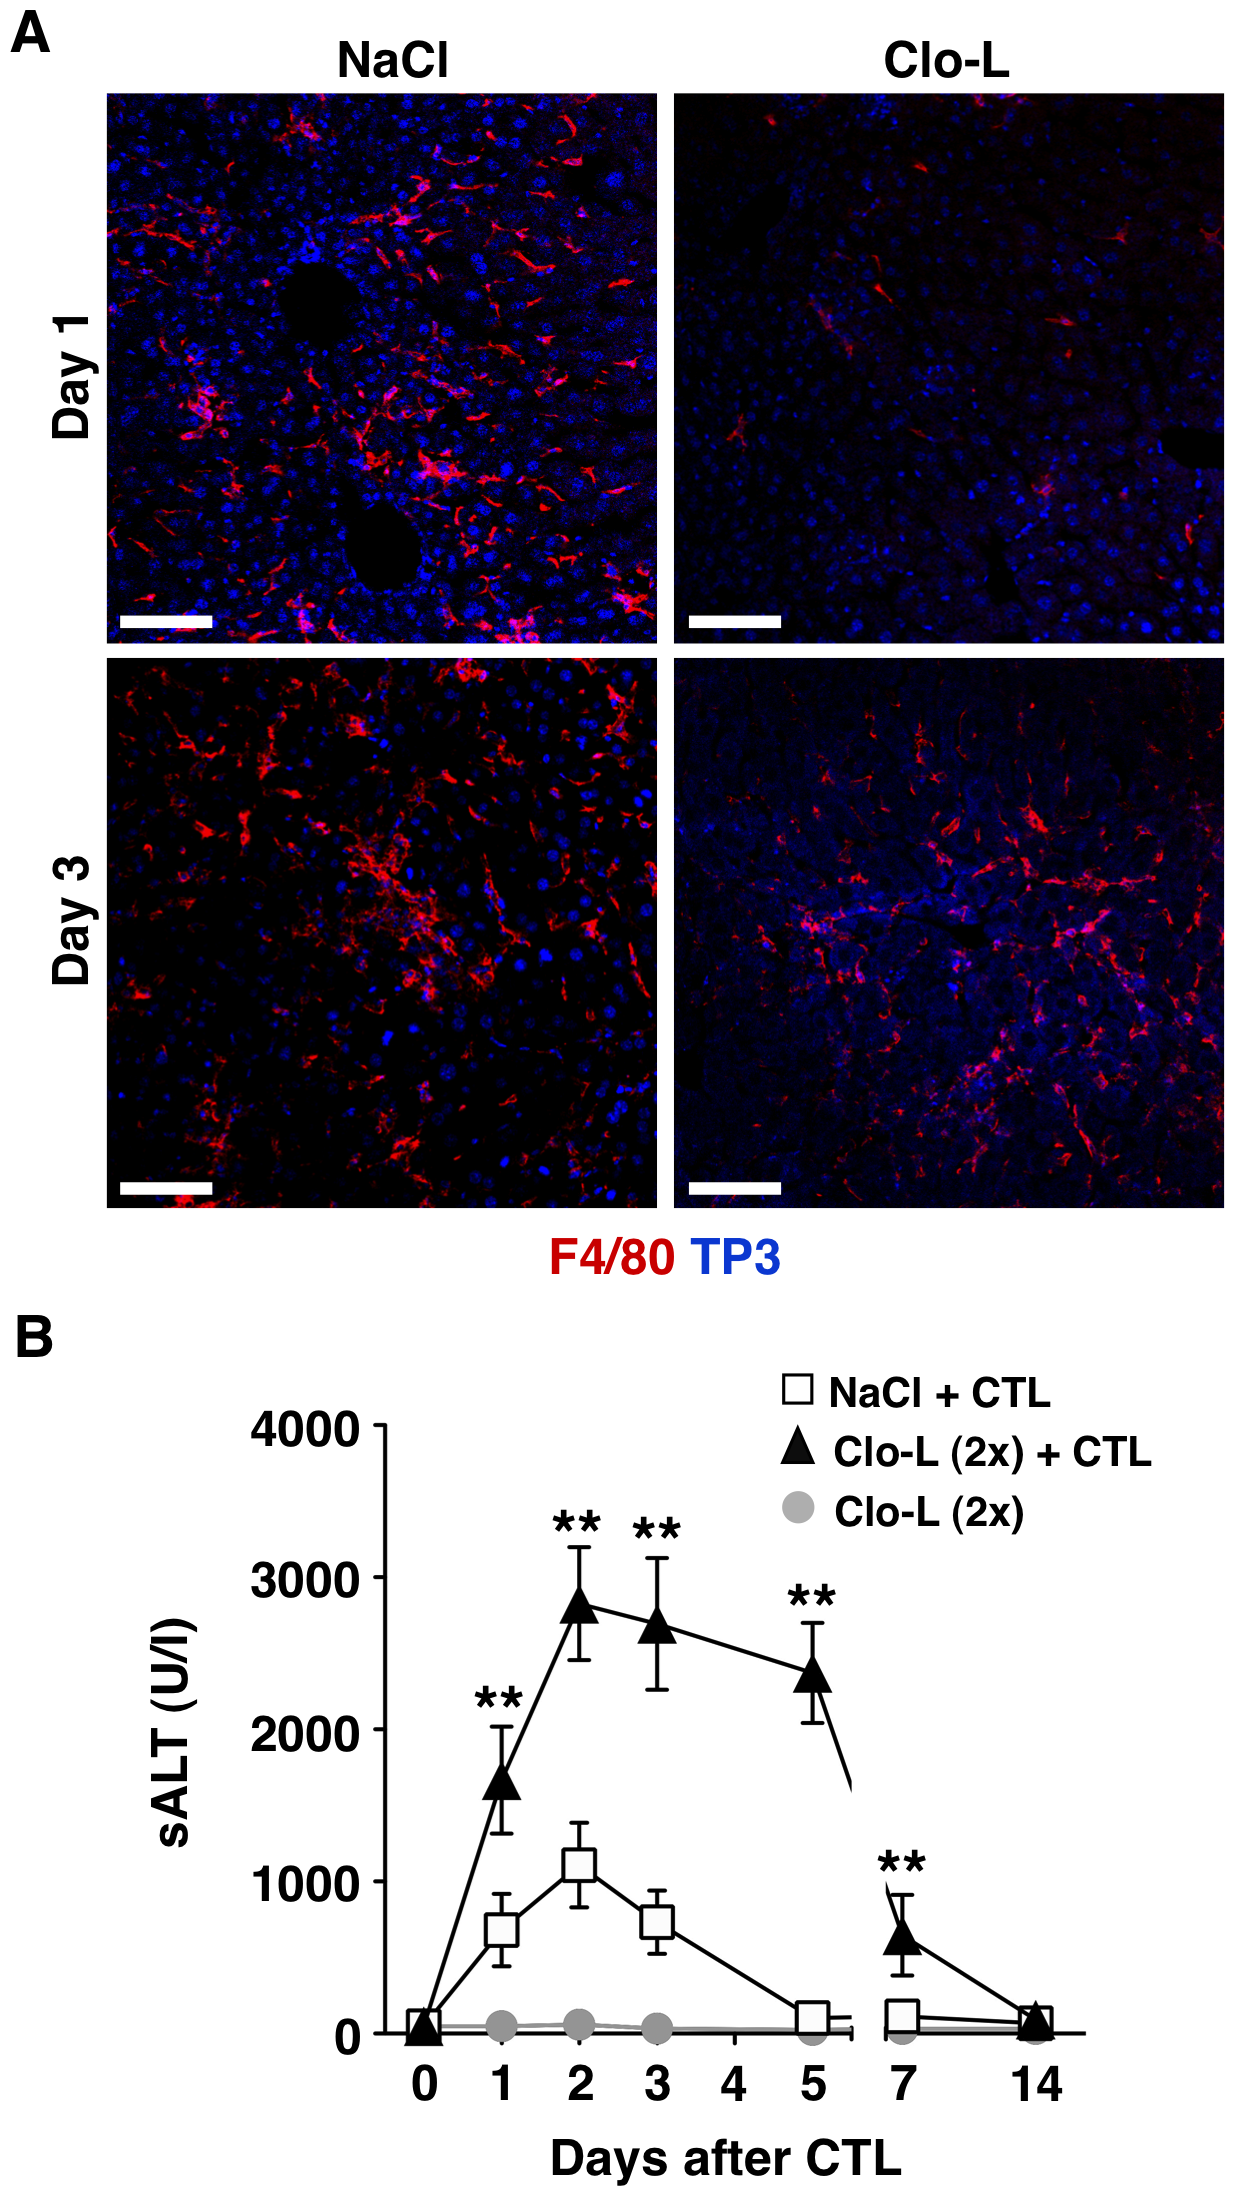 Recruitment of F4/80<sup>+</sup> cells into the inflamed liver and prolongation of disease severity in CTL-injected mice receiving a second Clo-L injection.